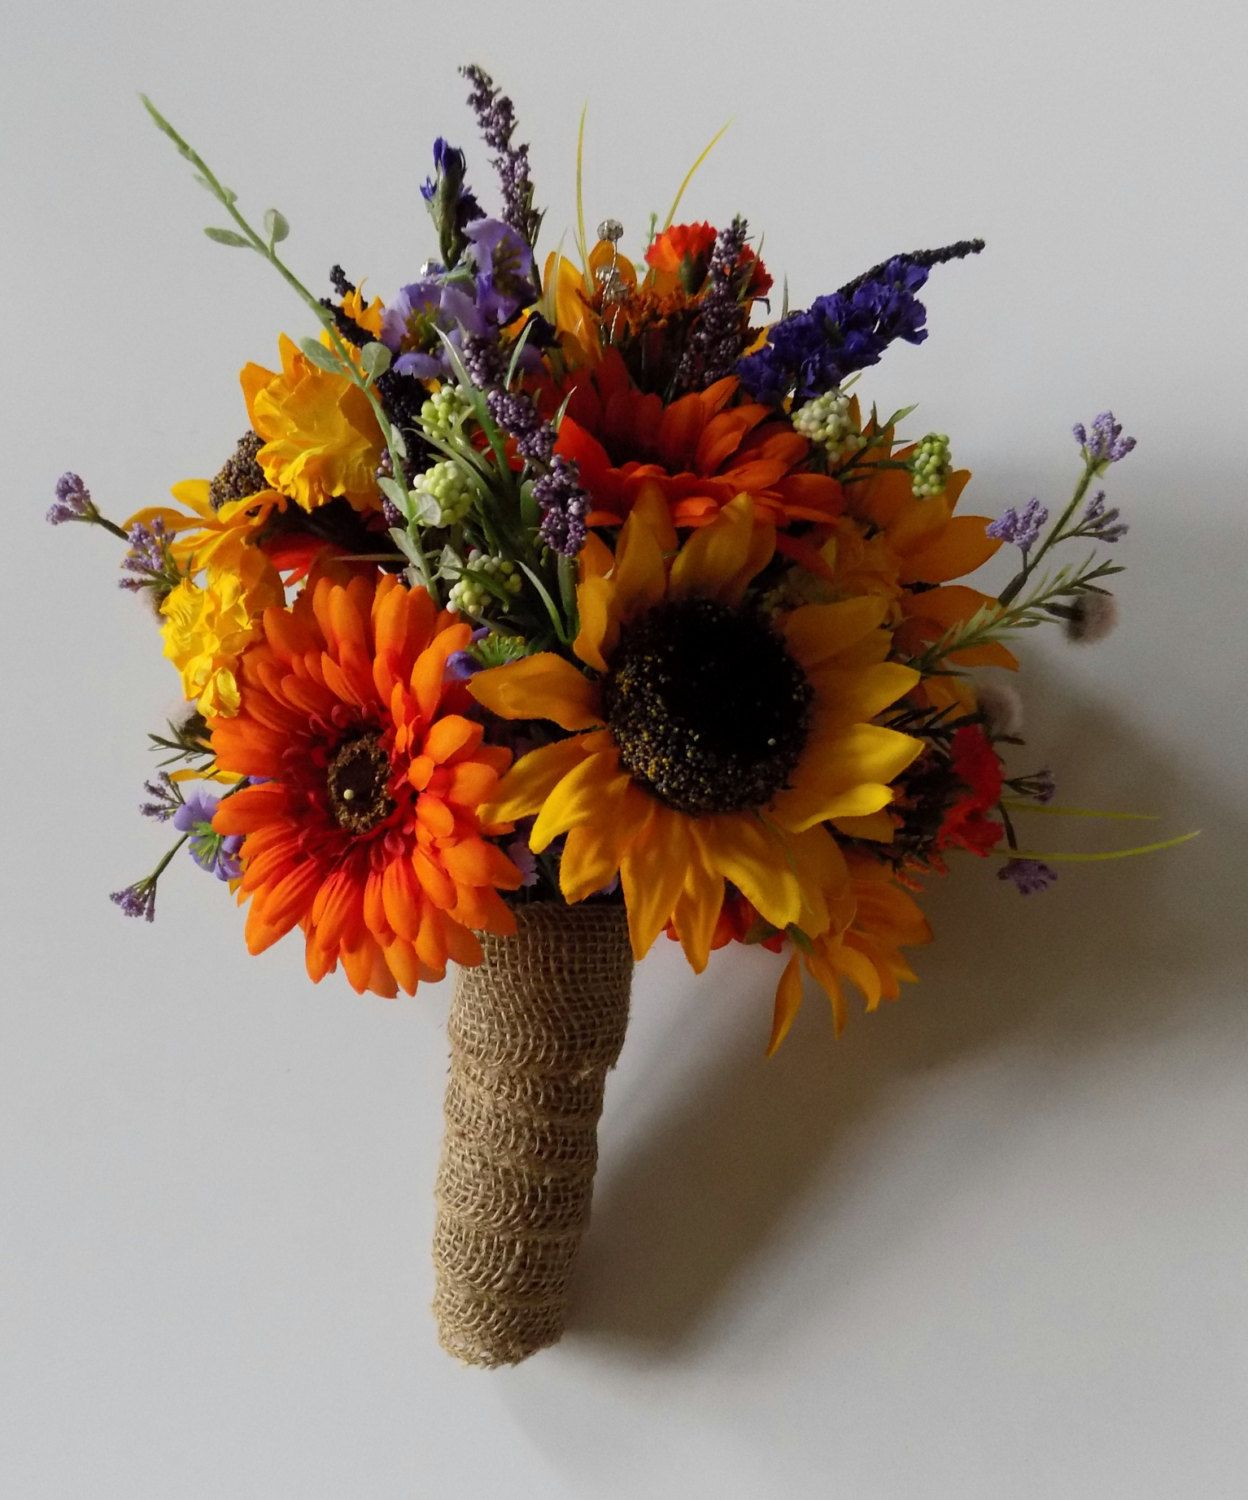 Bridesmaid Bouquets Sunflowers : Wildflower wedding bouquet sunflower bridal